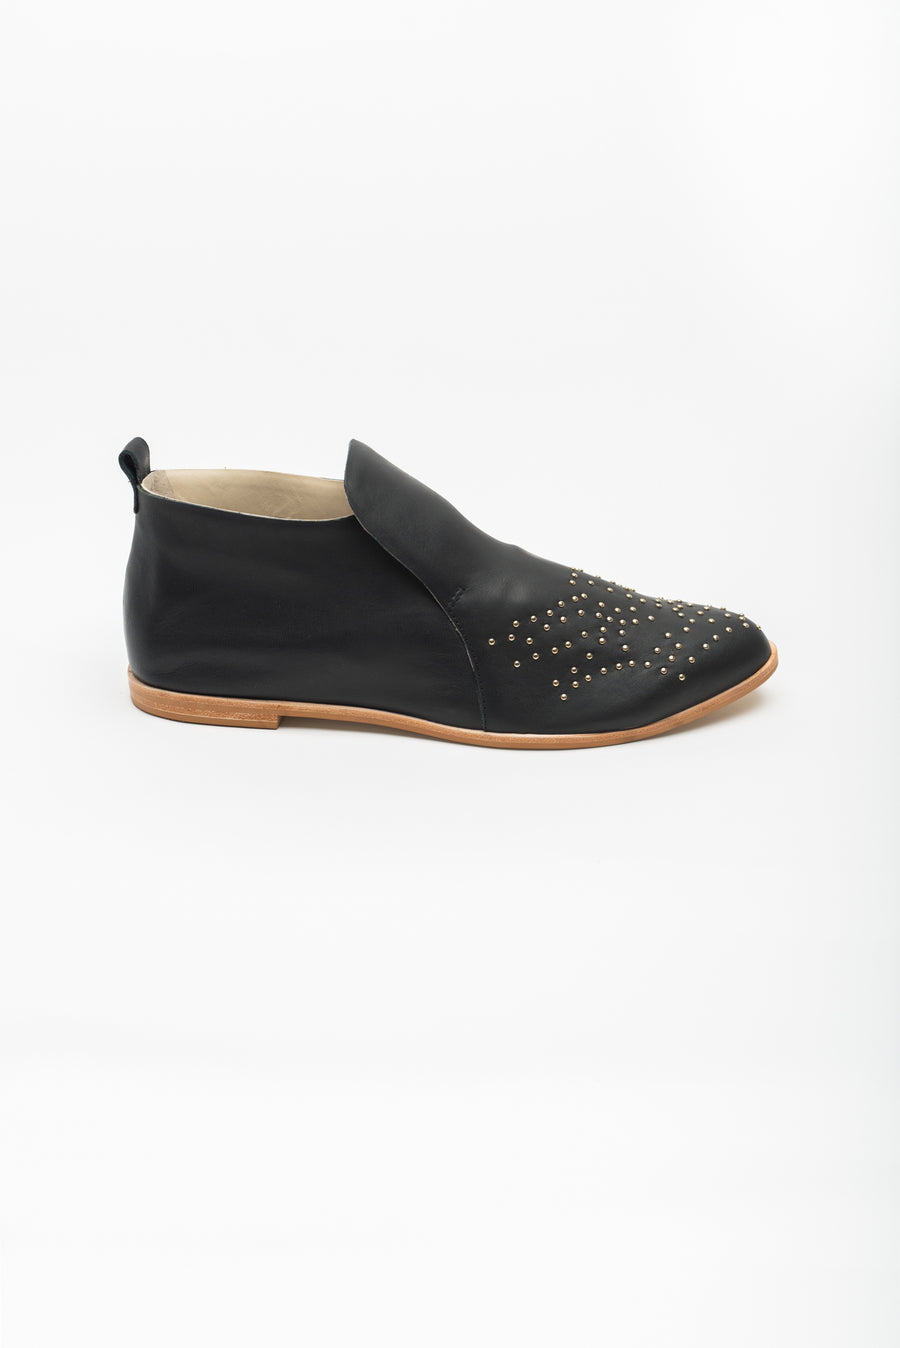 Tee Pee Slip-On - Black